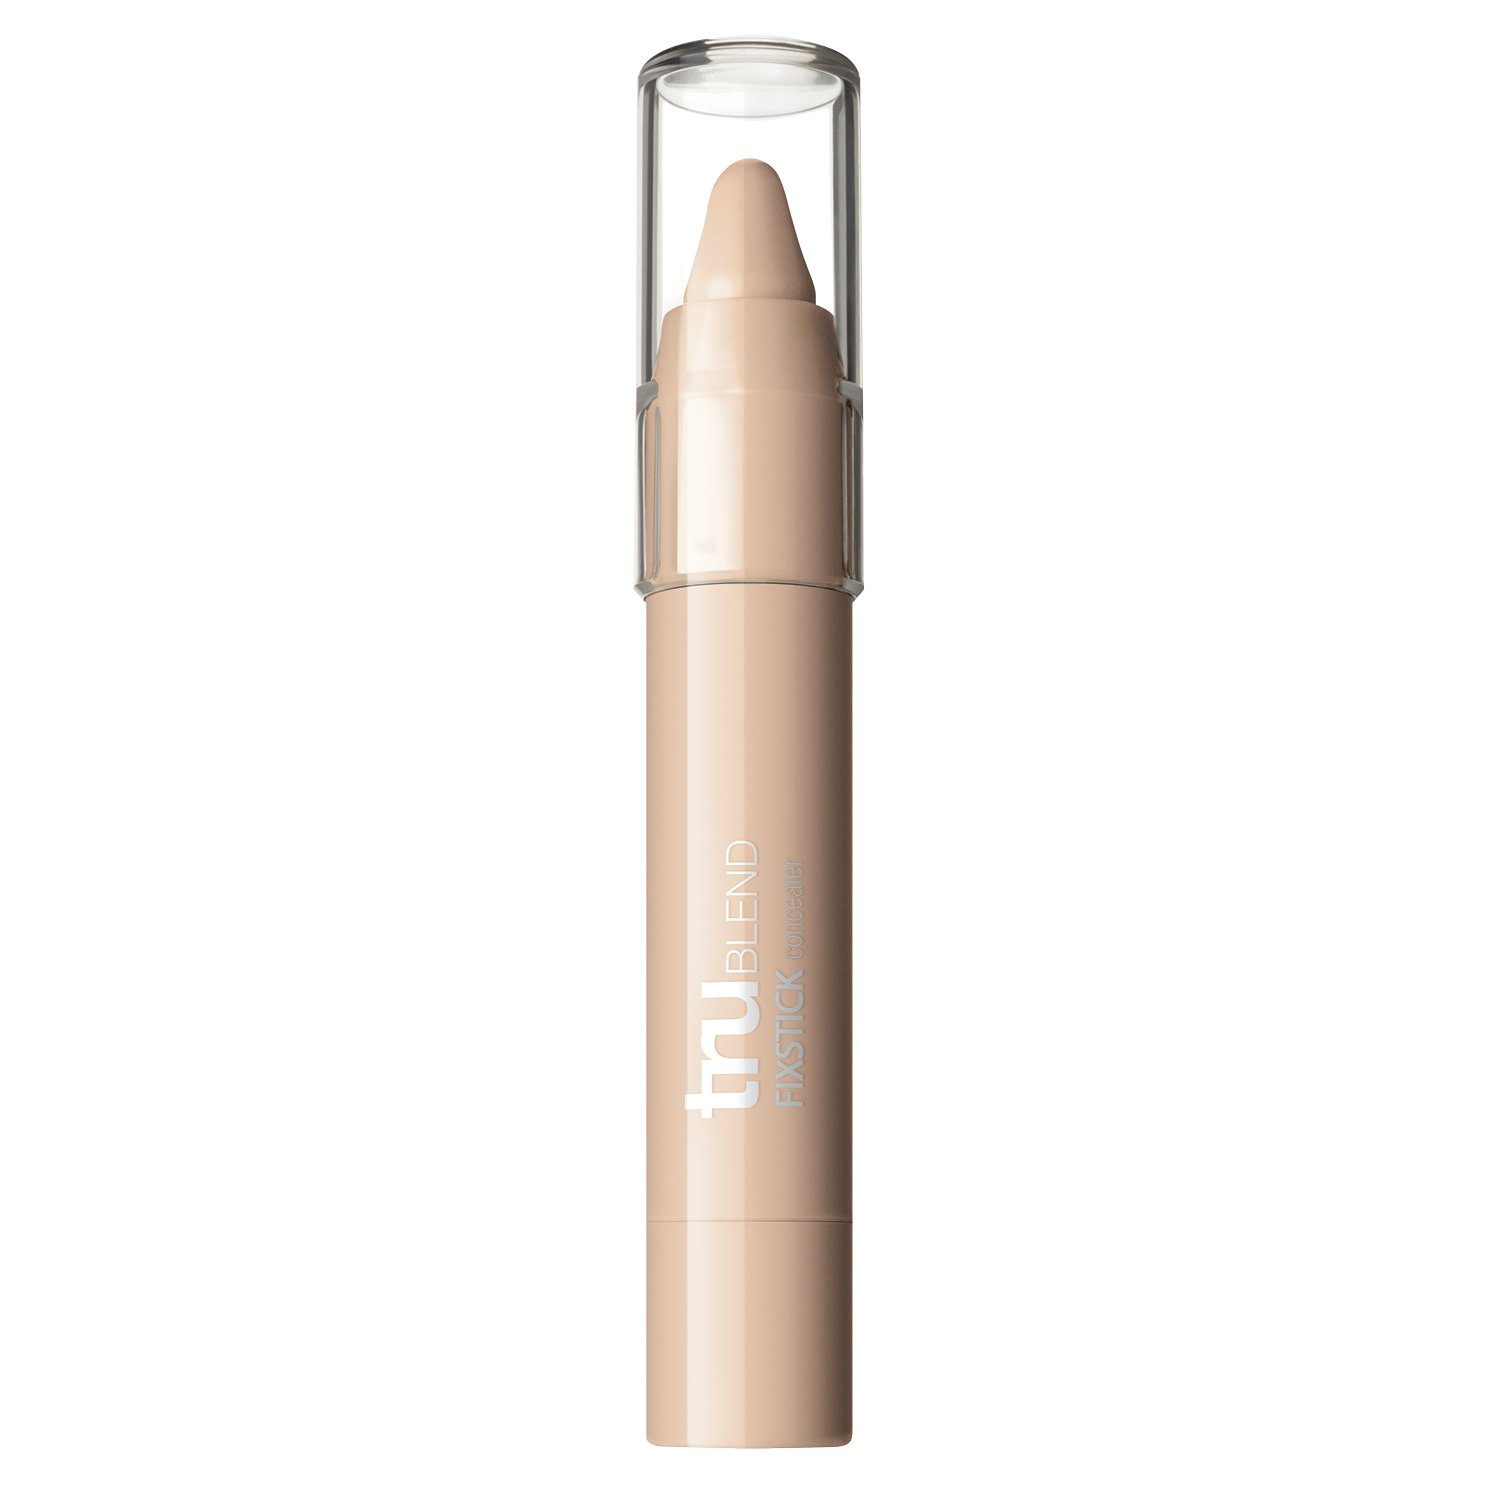 COVERGIRL truBlend FixStick Blendable Concealer Light.12 oz (packaging may vary) NA